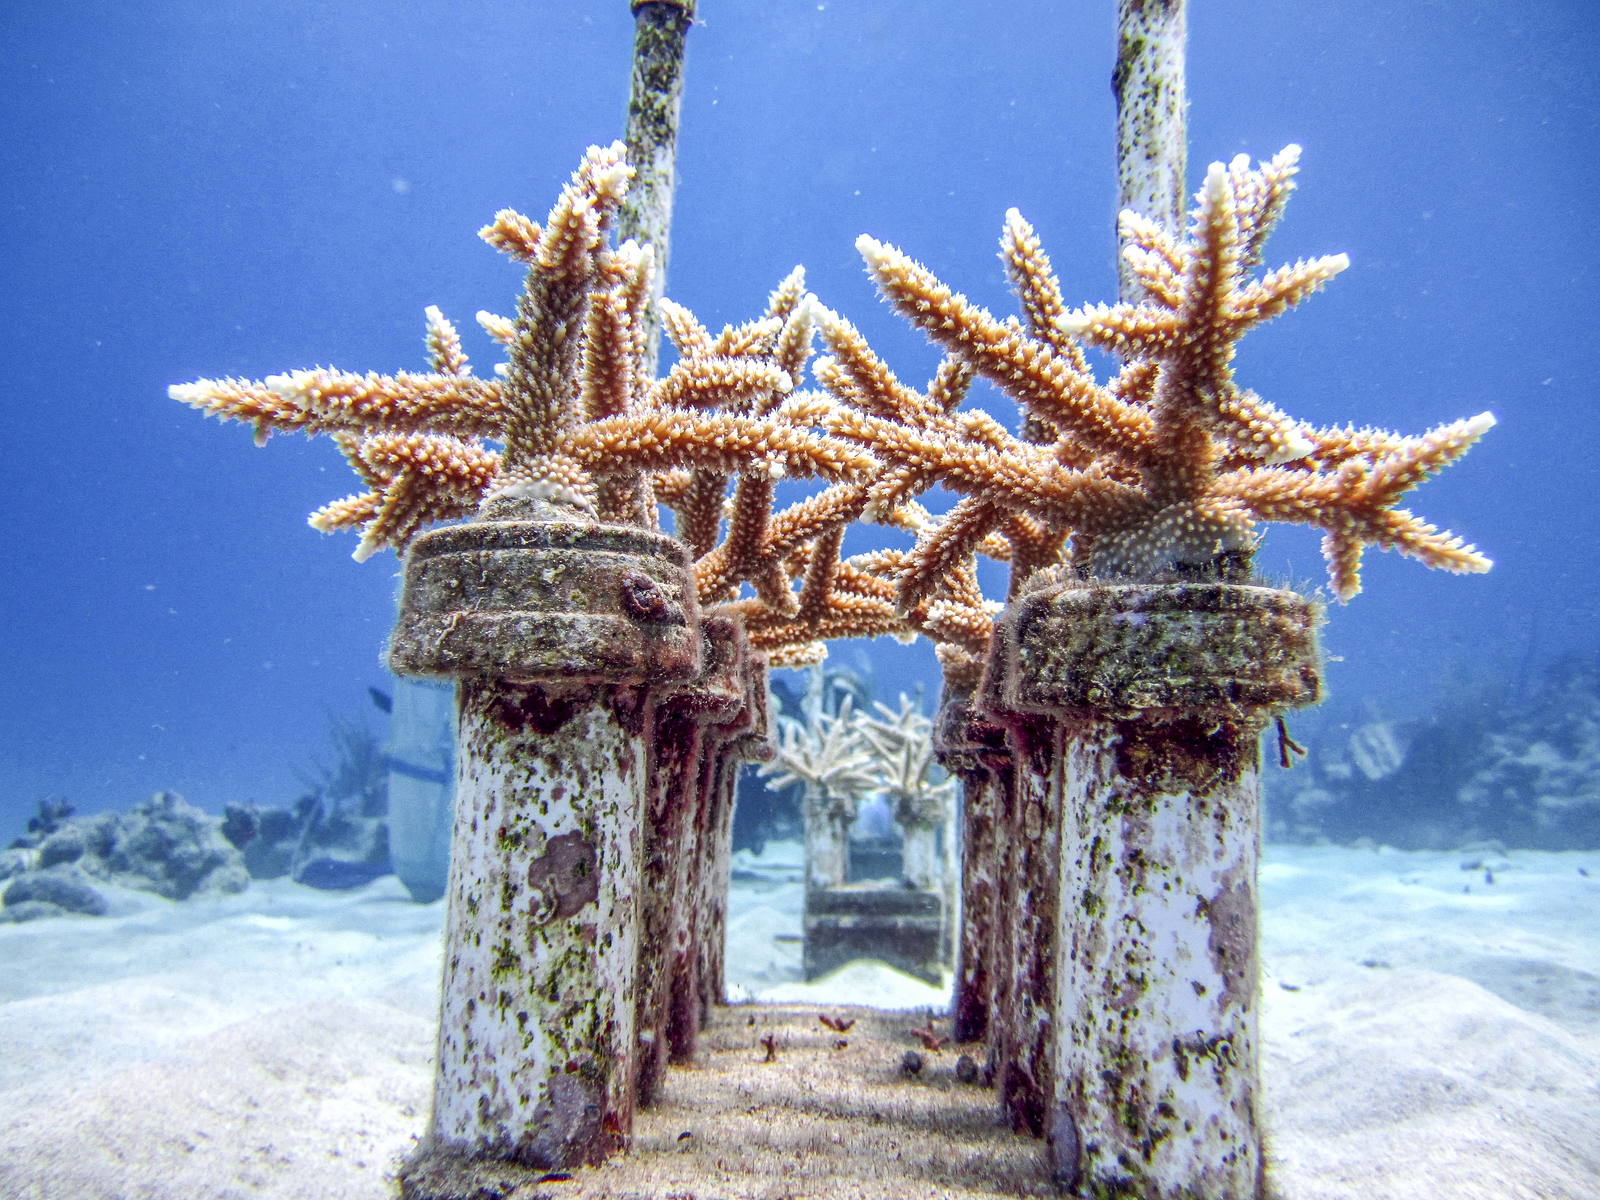 Staghorn Corals in Cane Bay, St. Croix. Photo © Kemit-Amon Lewis/TNC